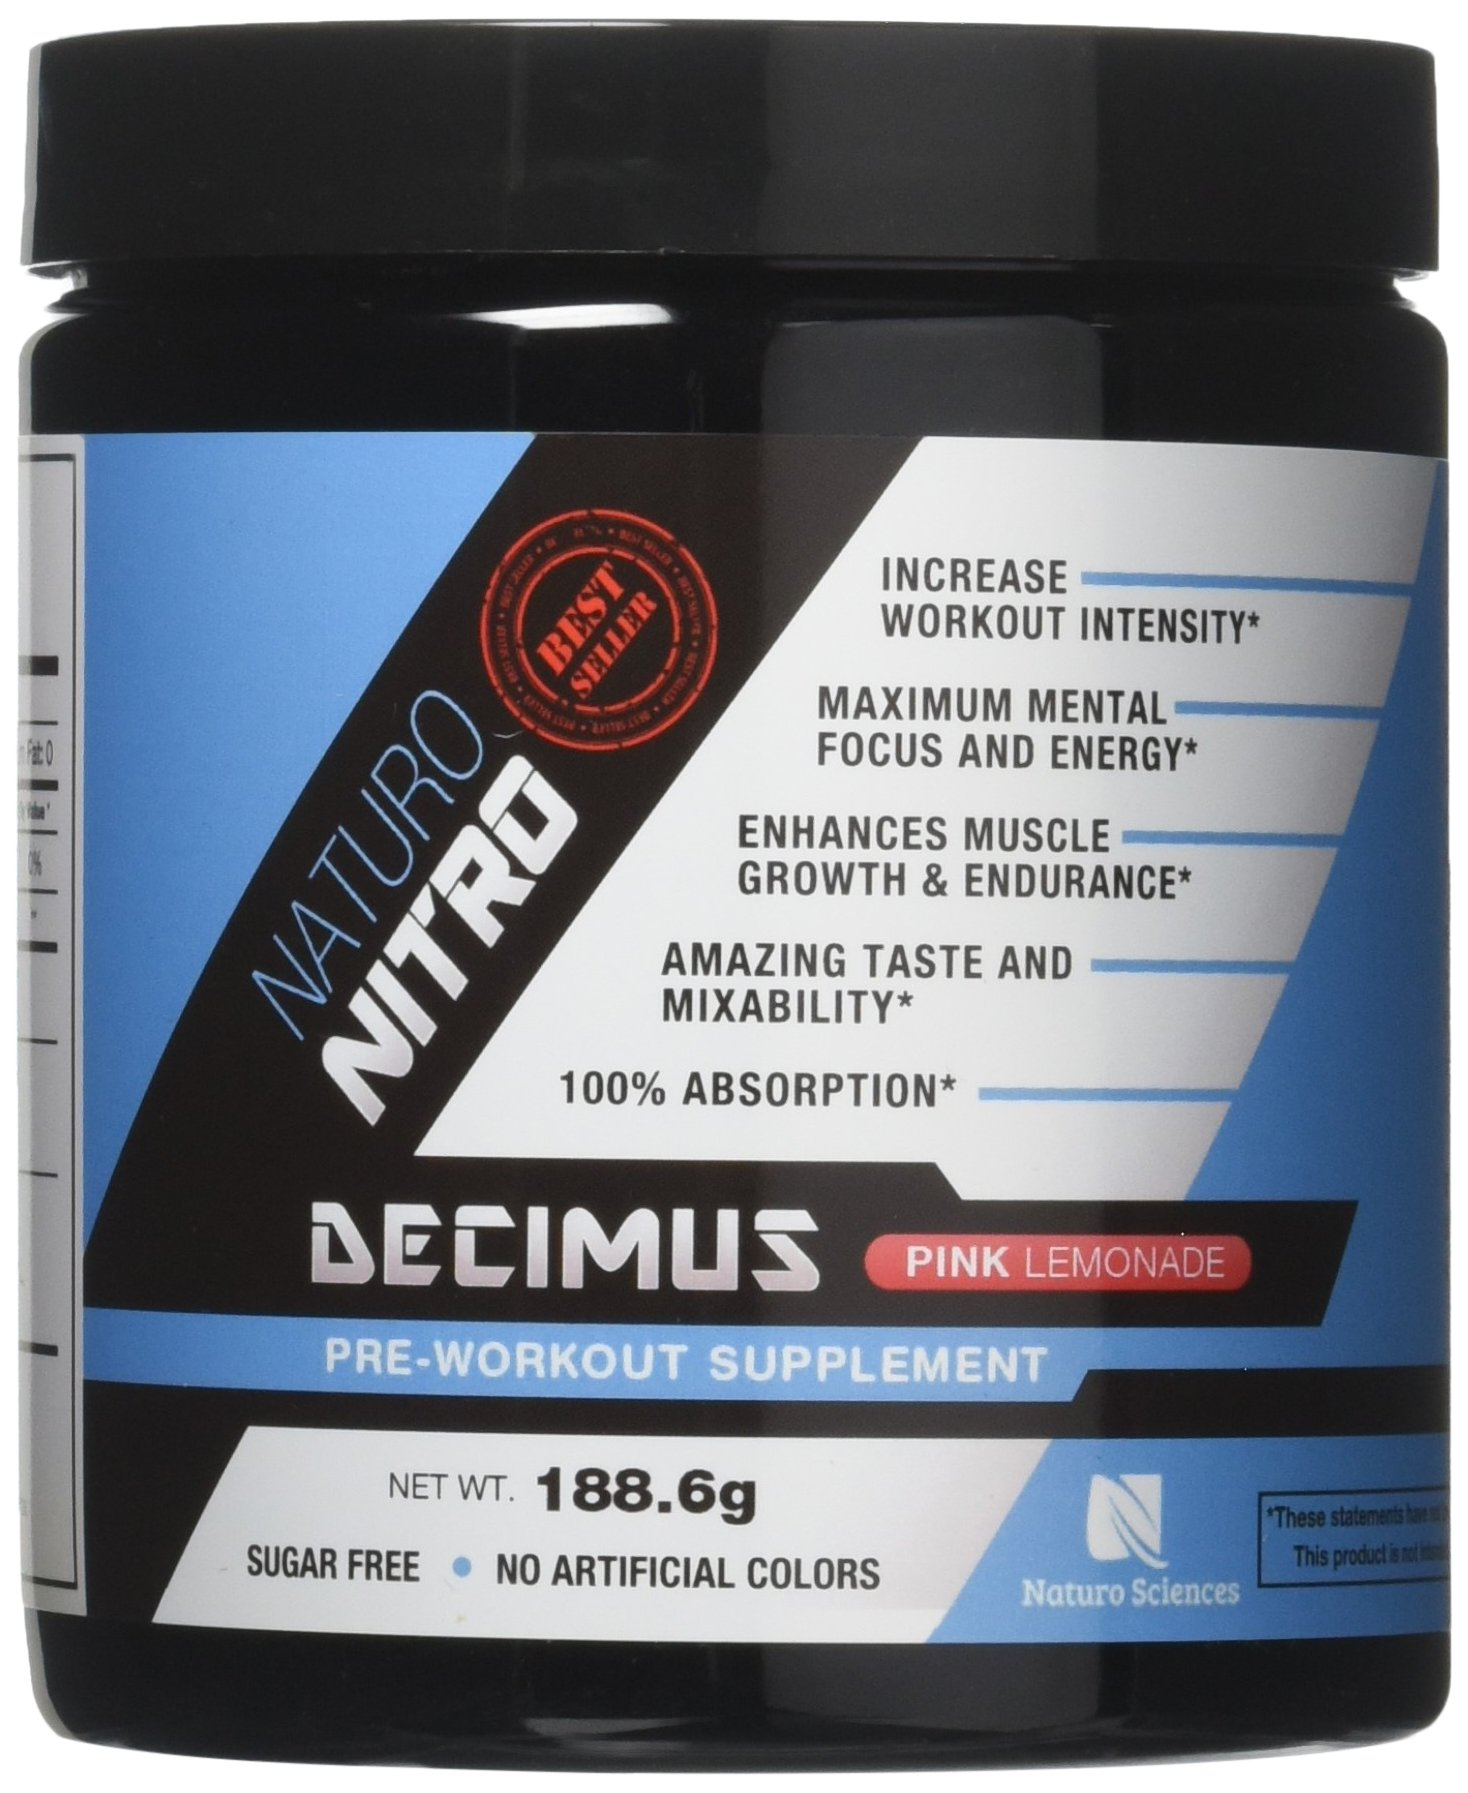 Naturo Nitro Pre Workout Decimus, Best Fat Burning Energy Drink with Caffeine, Nitrix Oxide Boosters and Amino Acids, Powerful Pre-workout for Men and Women, 28 Servings, Pink Lemonade Spark Flavor